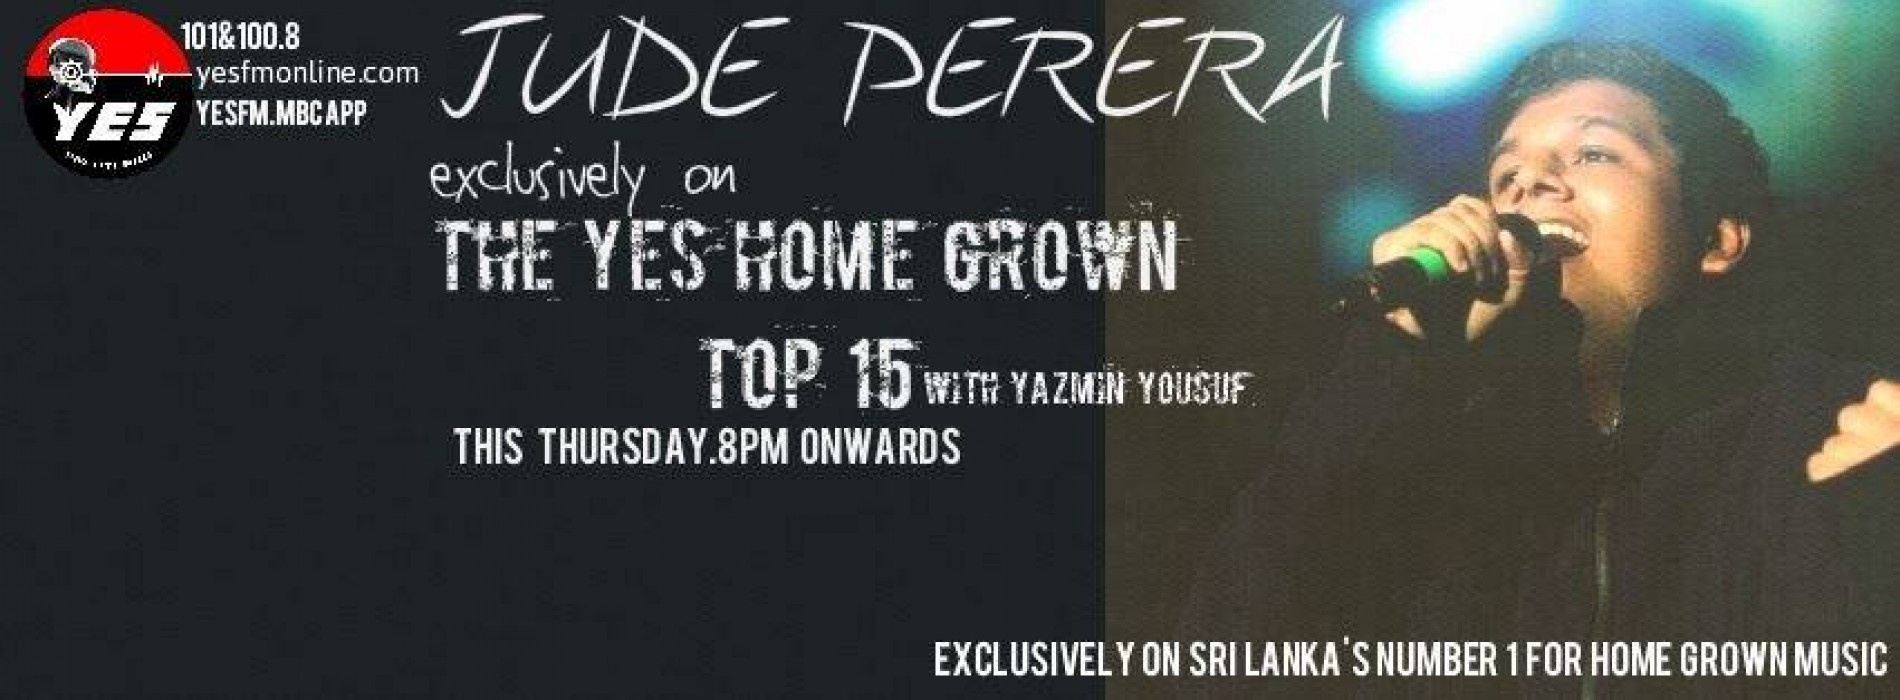 Jude Perera On The YES Home Grown Top 15